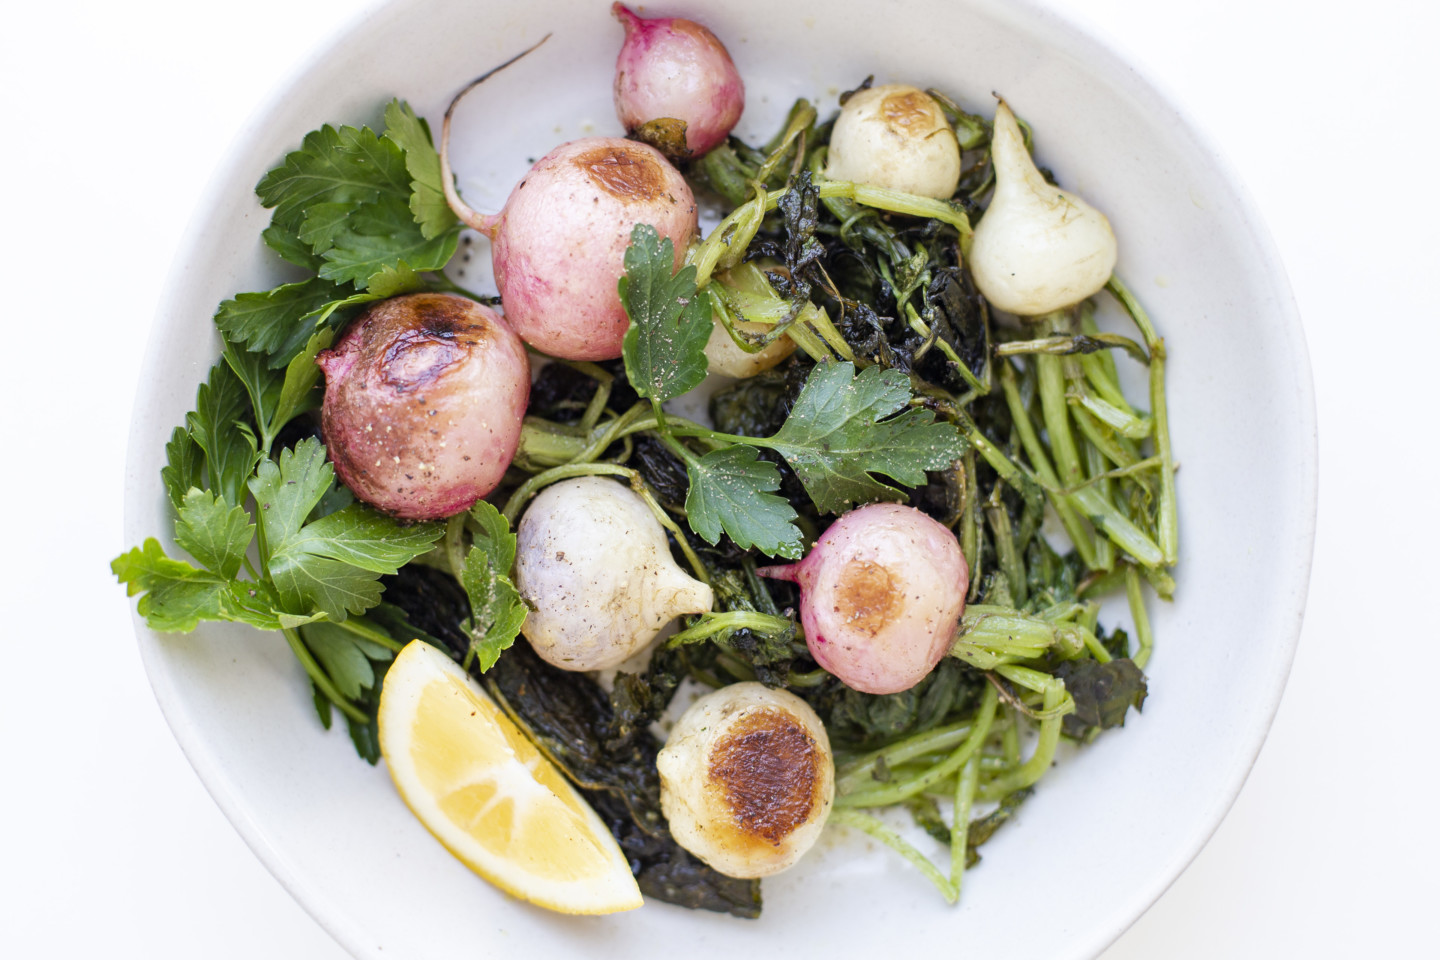 A plate of several roasted radishes, greens, and California Olive Ranch Everyday Extra Virgin Olive Oil.